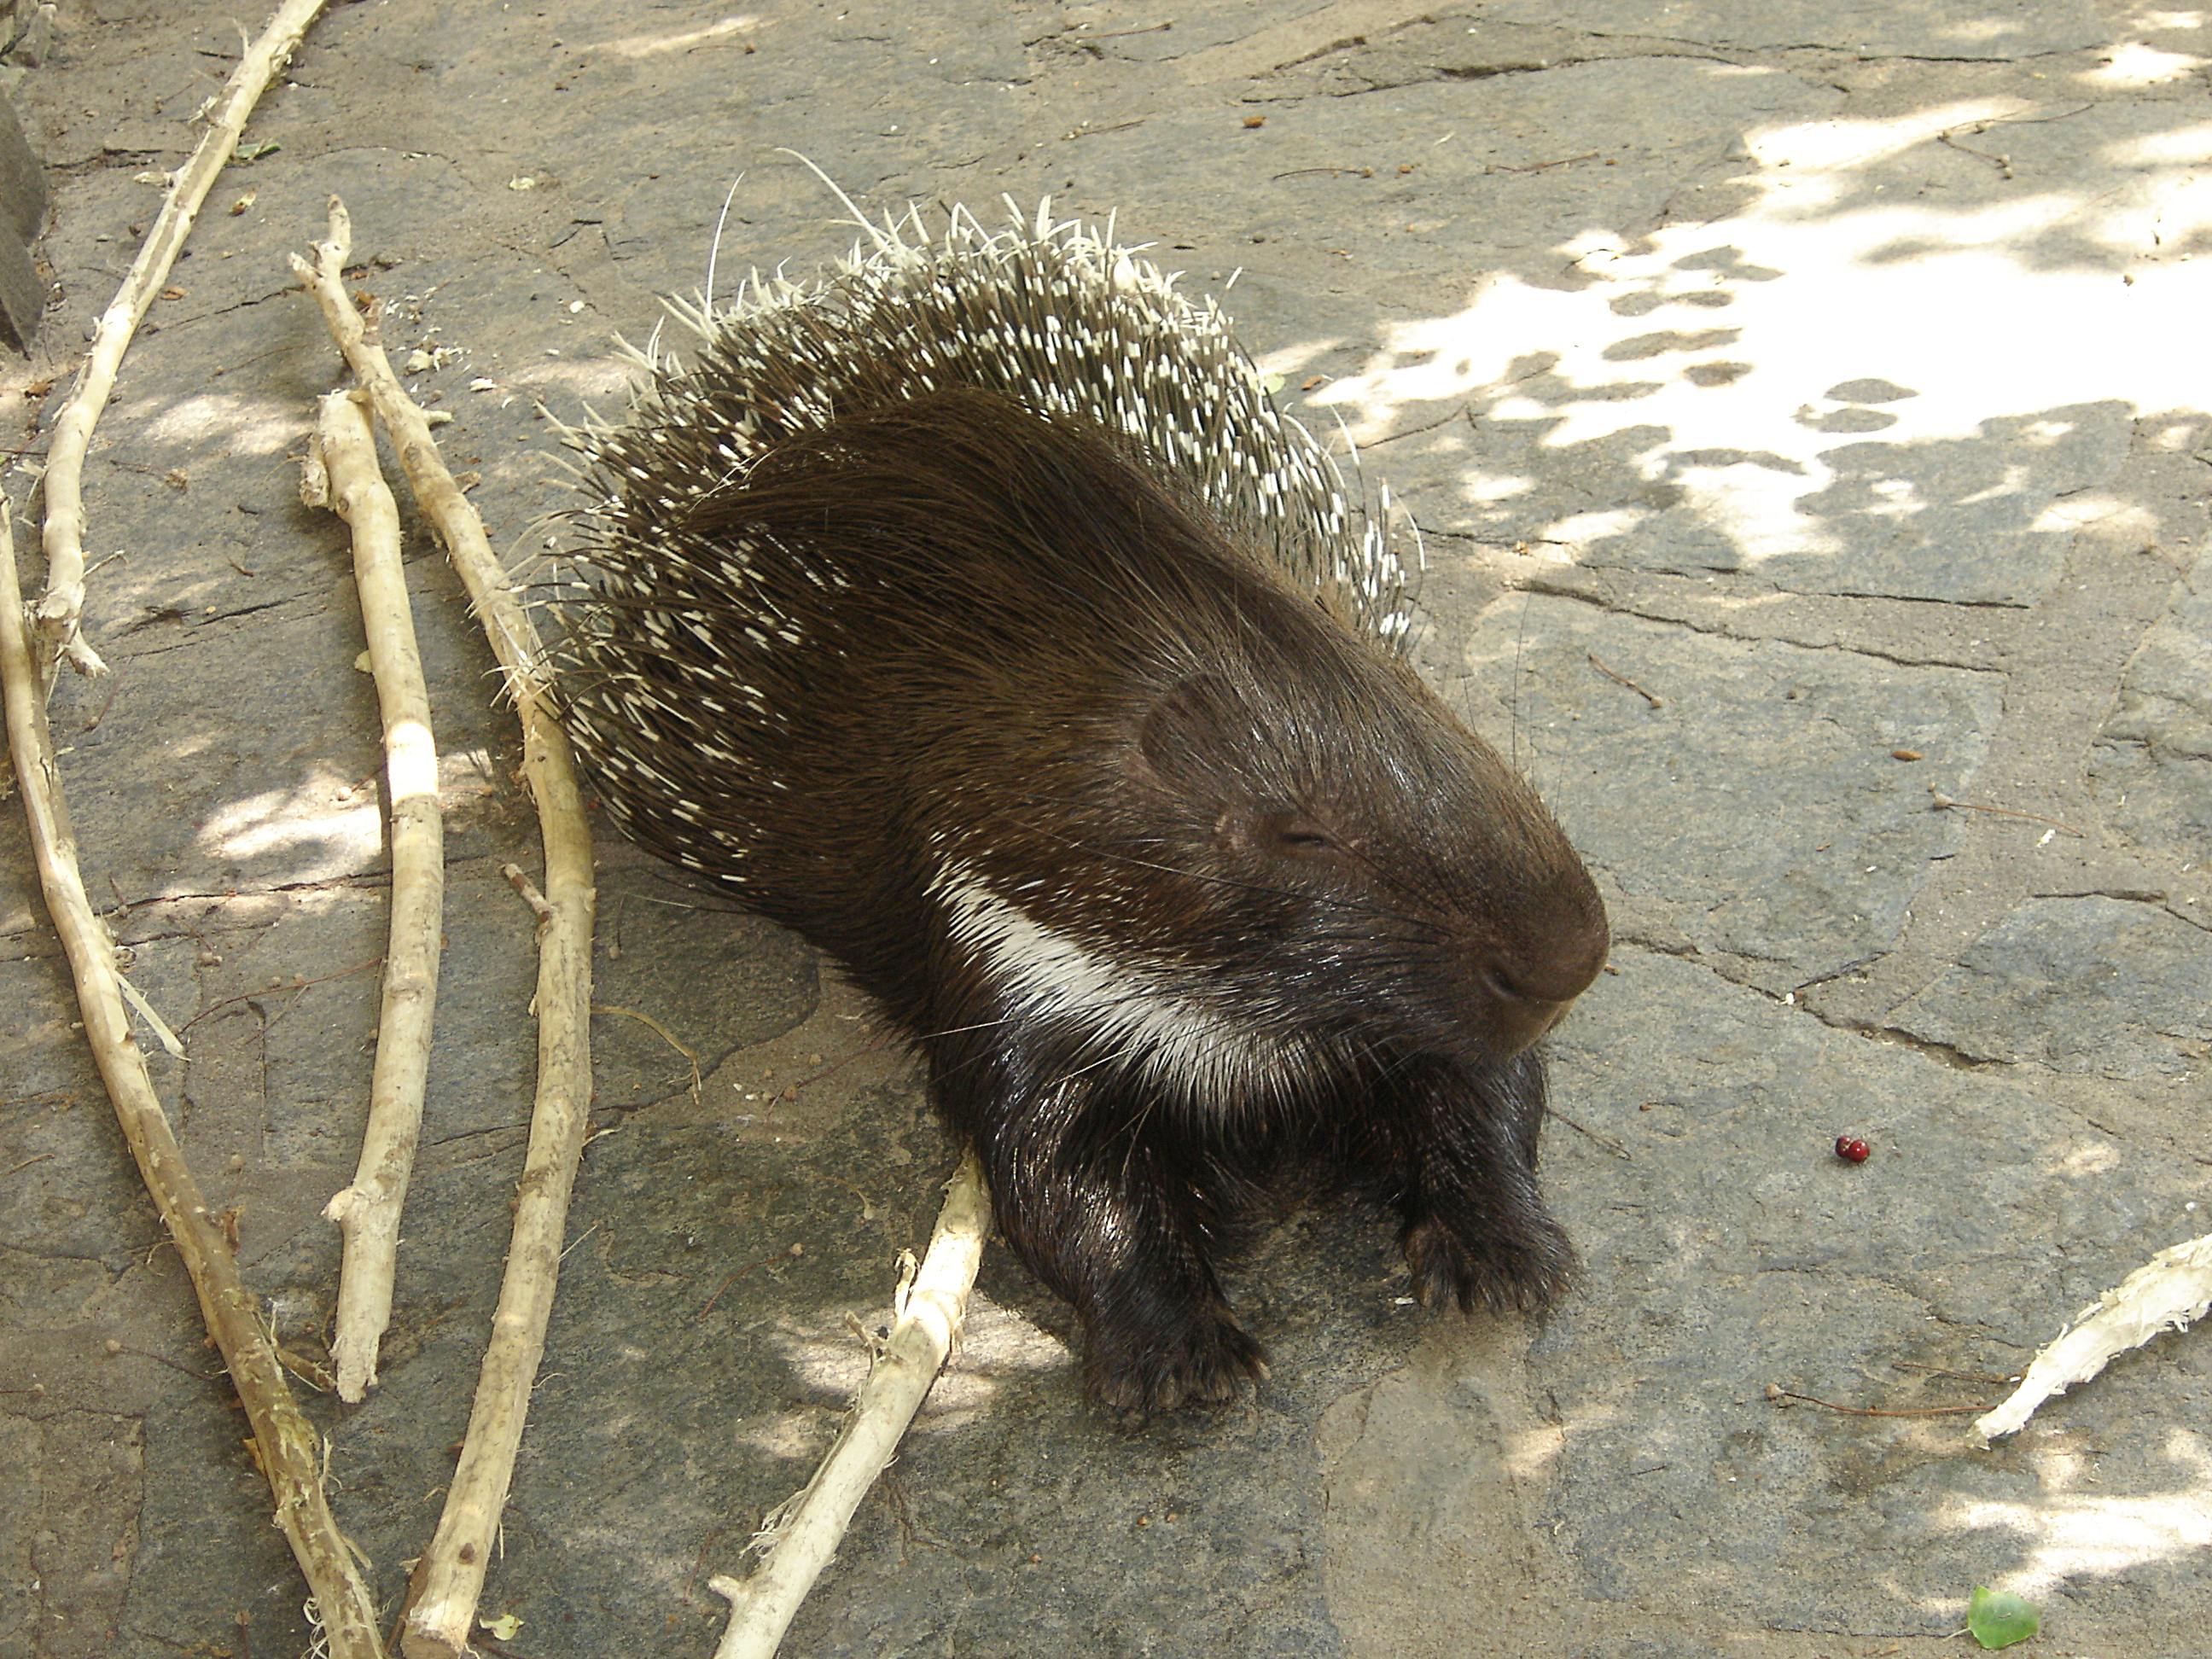 https://upload.wikimedia.org/wikipedia/commons/6/6a/Porcupine_Berlin_Zoo.jpg